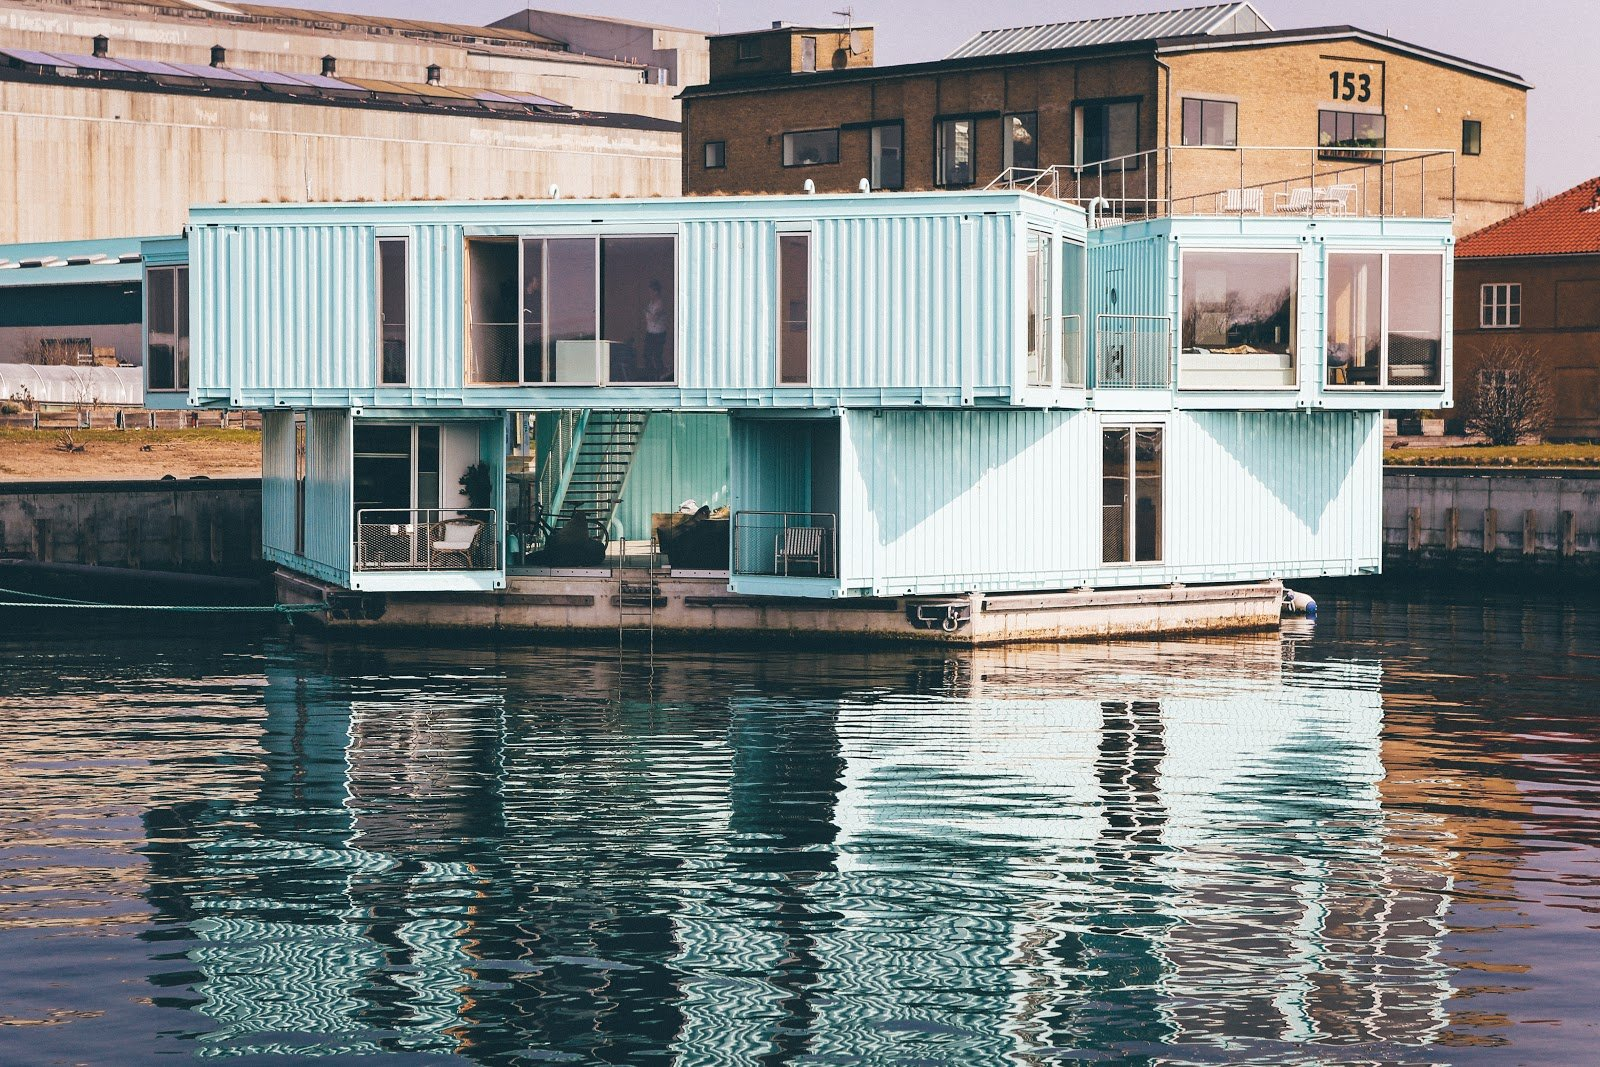 Shipping container home on the water